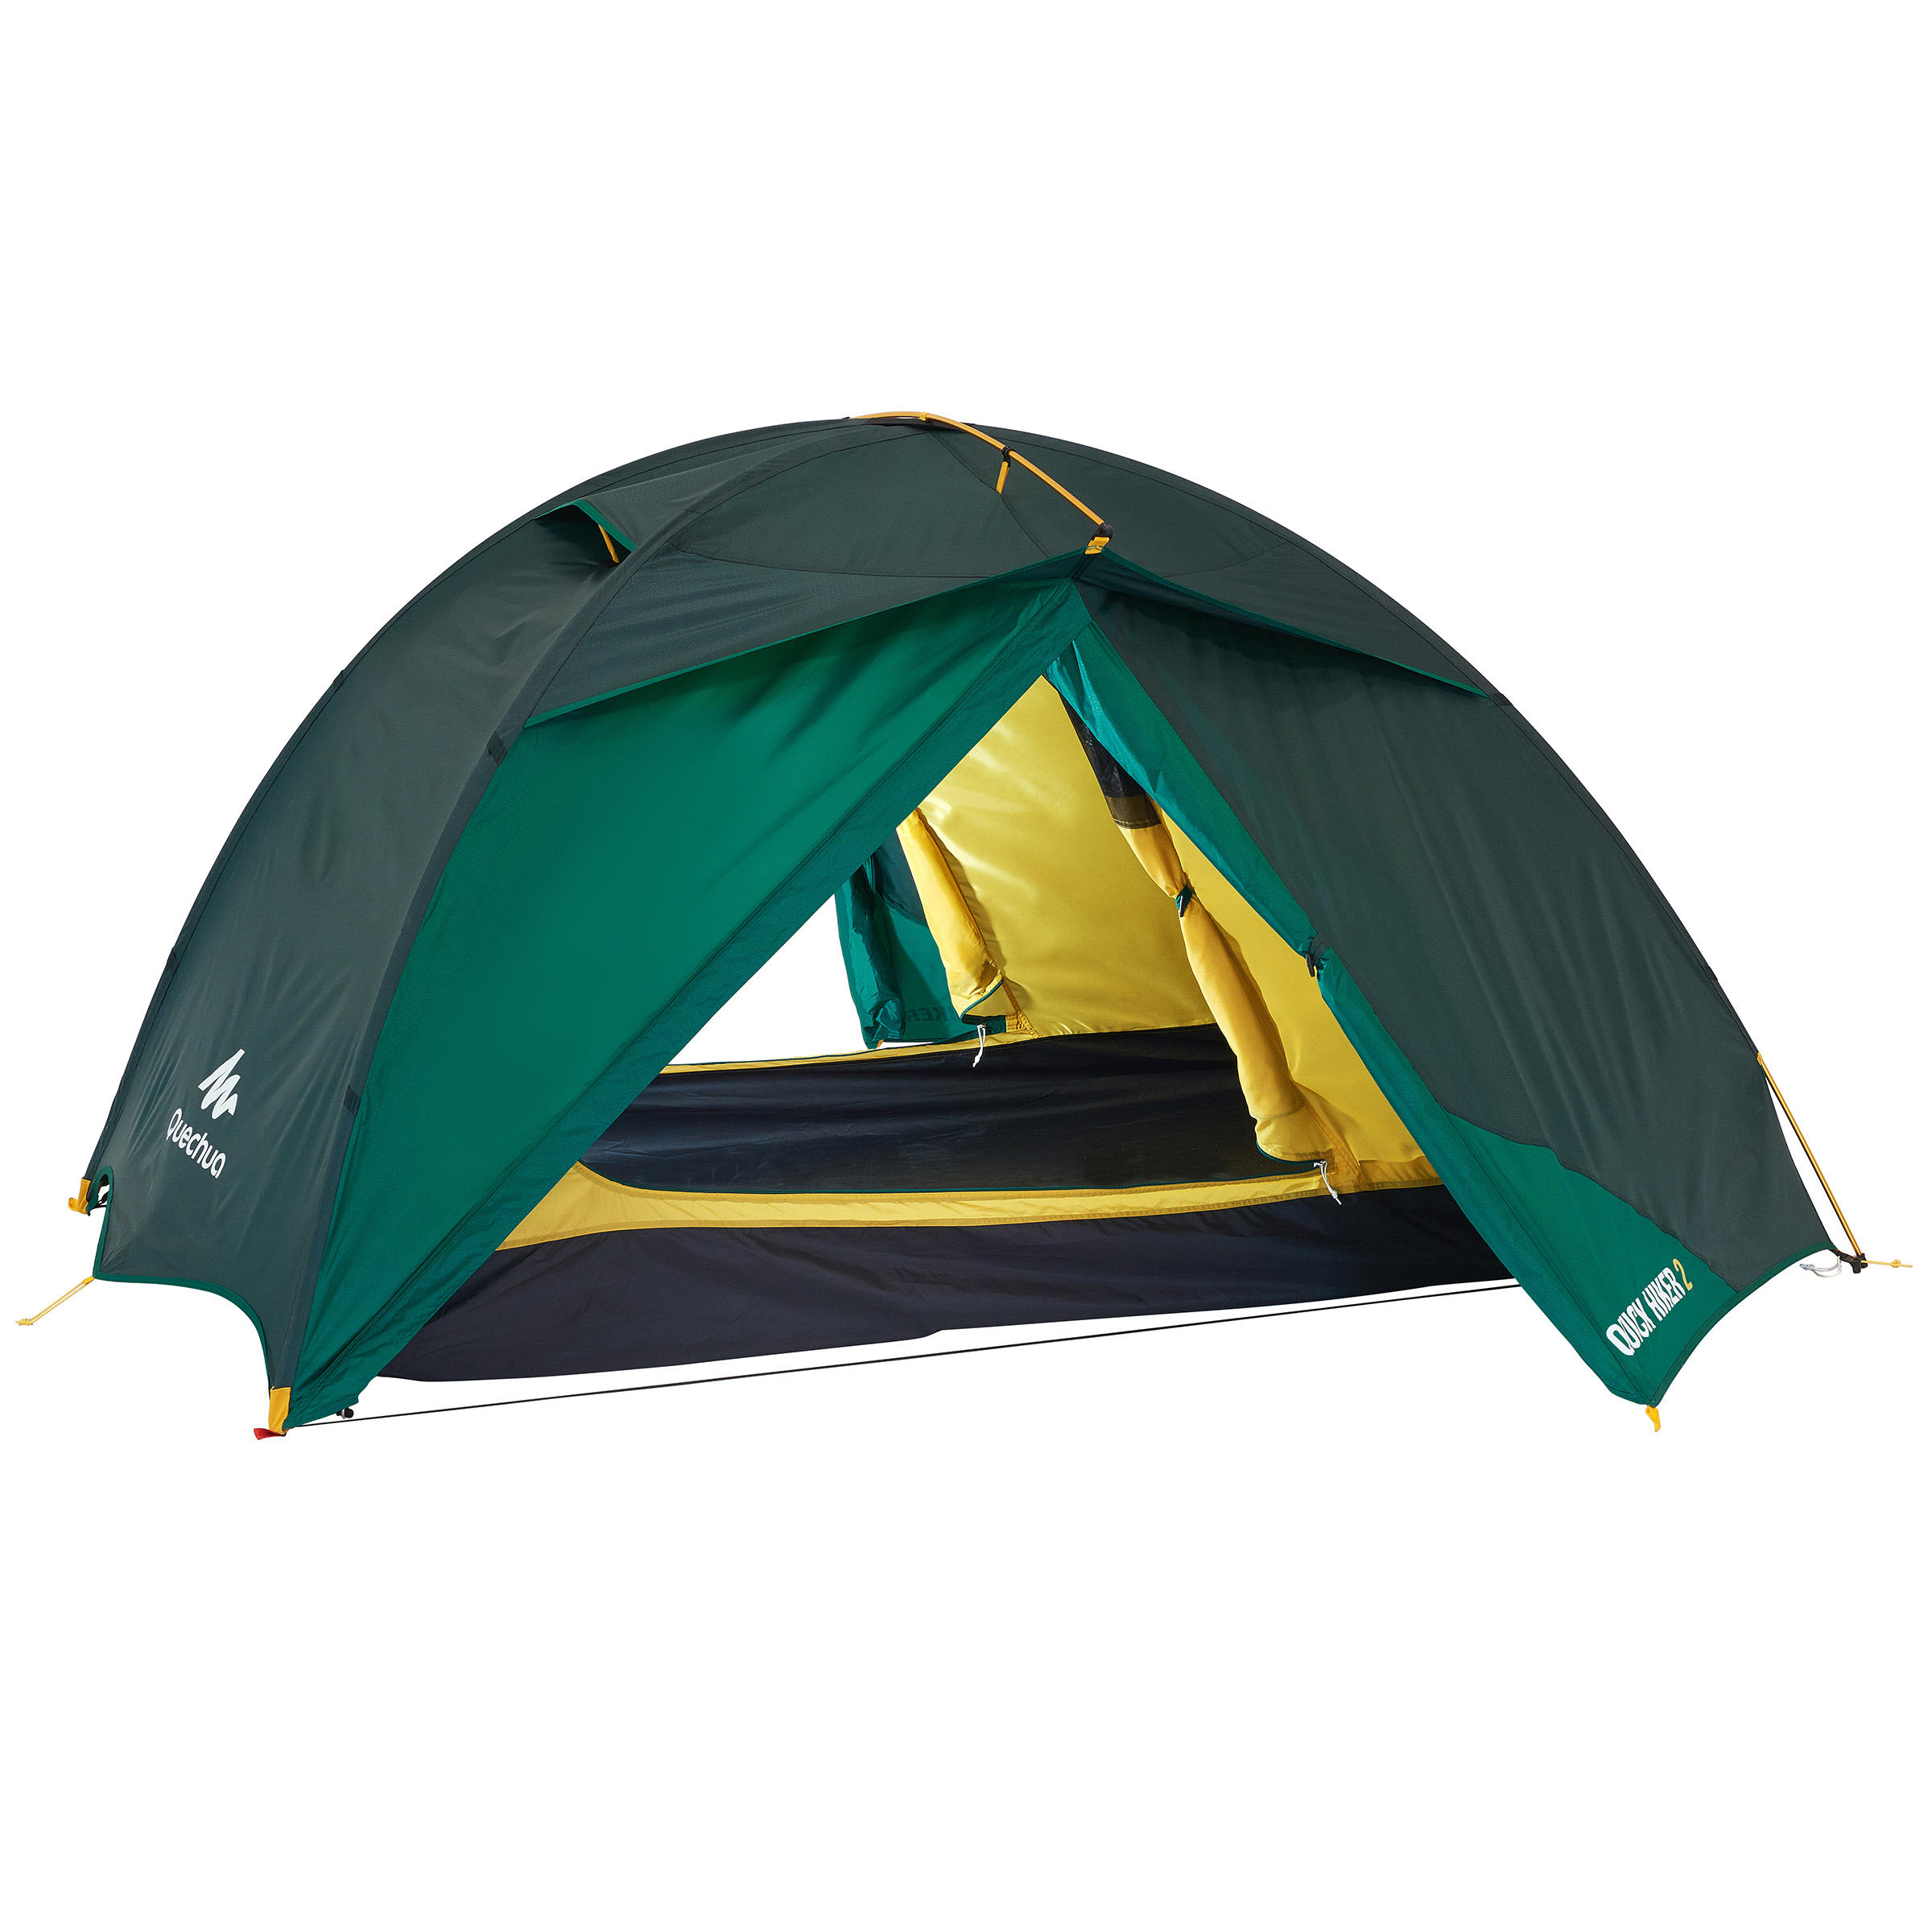 Quick Hiker Bivouac/Trekking/Hiking Tent - 2-Man Green - 1099160  sc 1 th 225 & 1 to 3 pers tents Quick Hiker Bivouac/Trekking/Hiking Tent - 2-Man ...